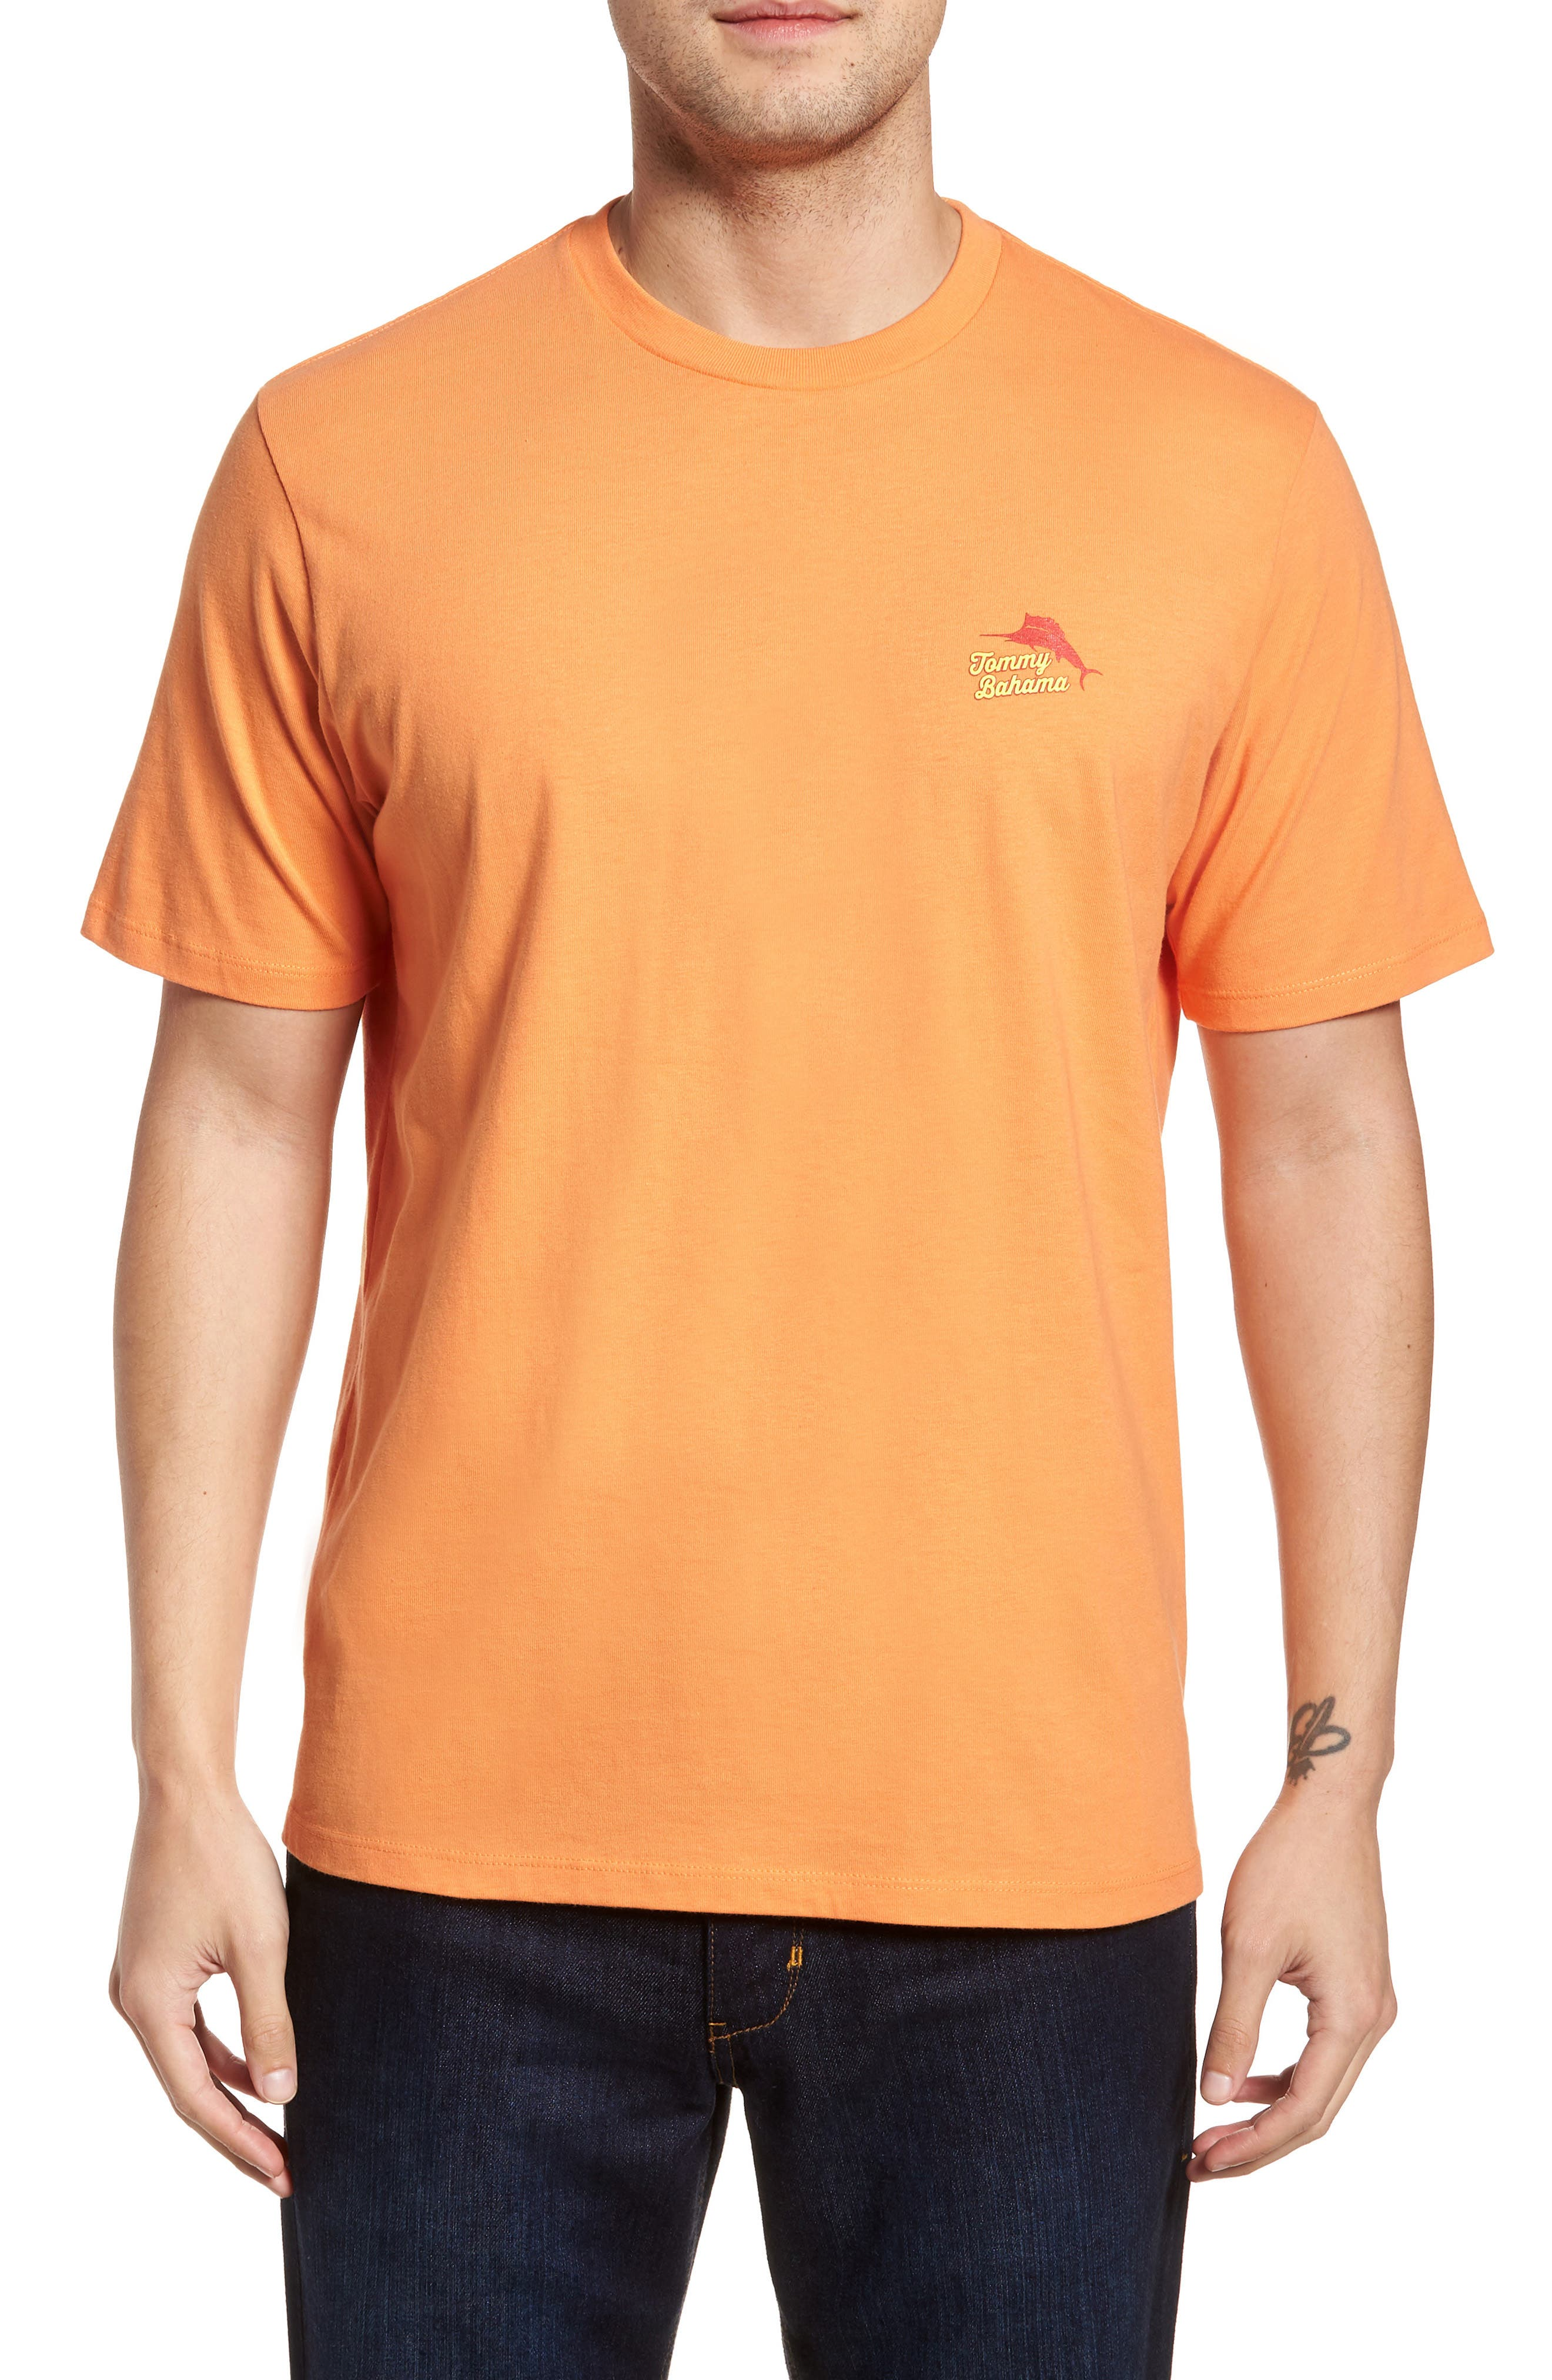 Ryes to the Occasion T-Shirt,                         Main,                         color, Bright Apricot